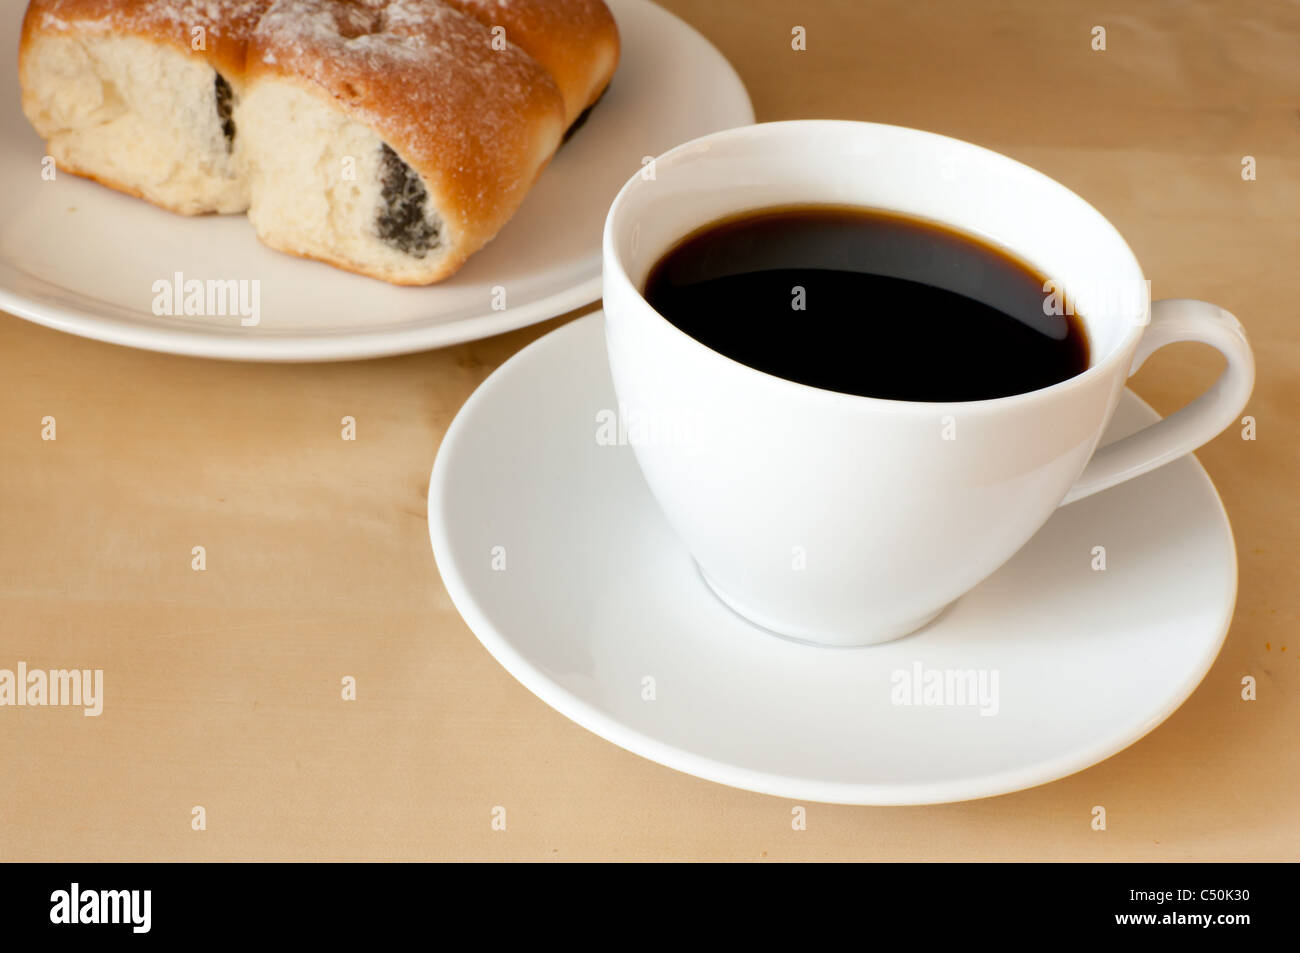 5c5b3b76871 Espresso Coffee and Stuffed Cakes on the Table Stock Photo: 37508996 ...